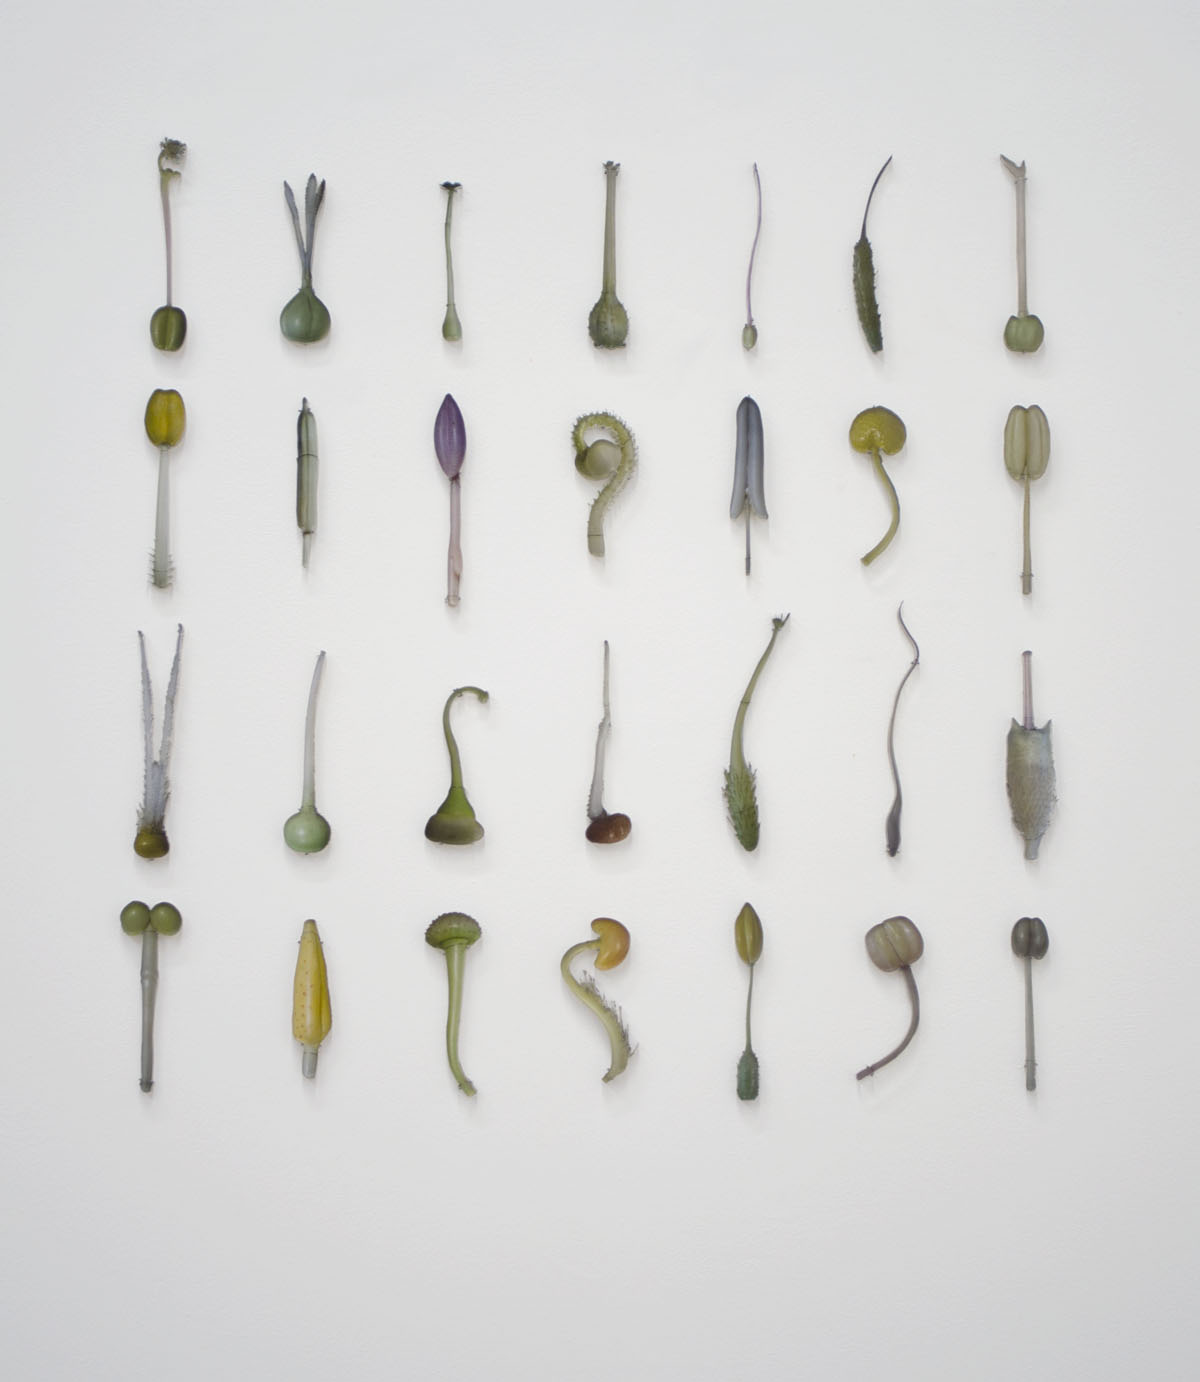 Andrea Frank - Pistils and Stamen - 2012 - Blaschka Glass Flowers, Harvard Museum of Natural History